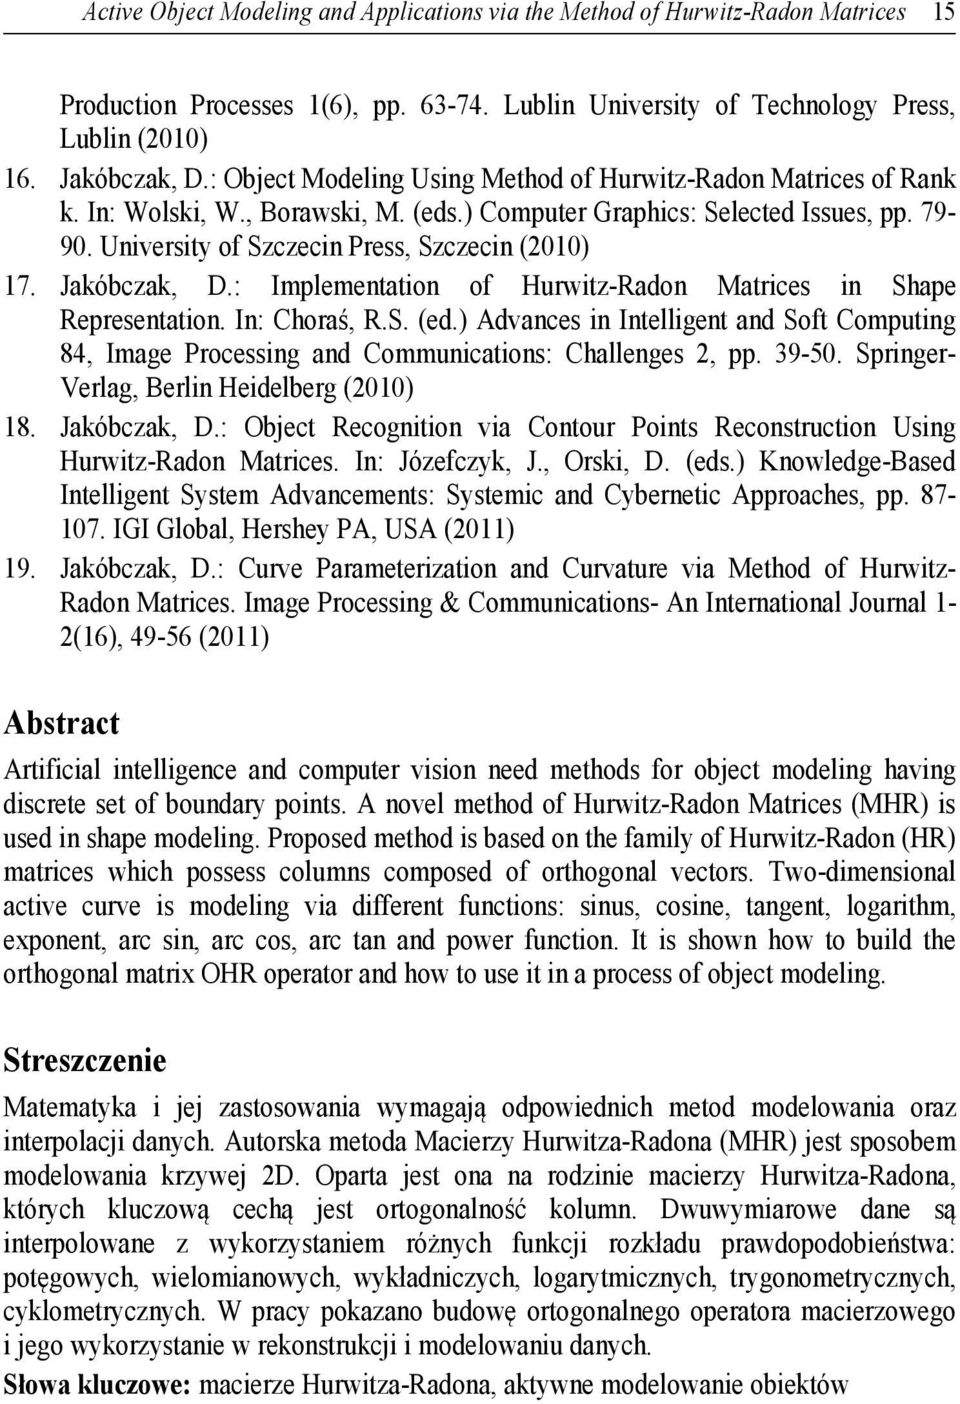 Jakóbczak, D.: Implementation of Hrwitz-Radon Matrices in Shape Representation. In: Choraś, R.S. (ed.) Advances in Intelligent and Soft Compting 84, Image Processing and Commnications: Challenges, pp.